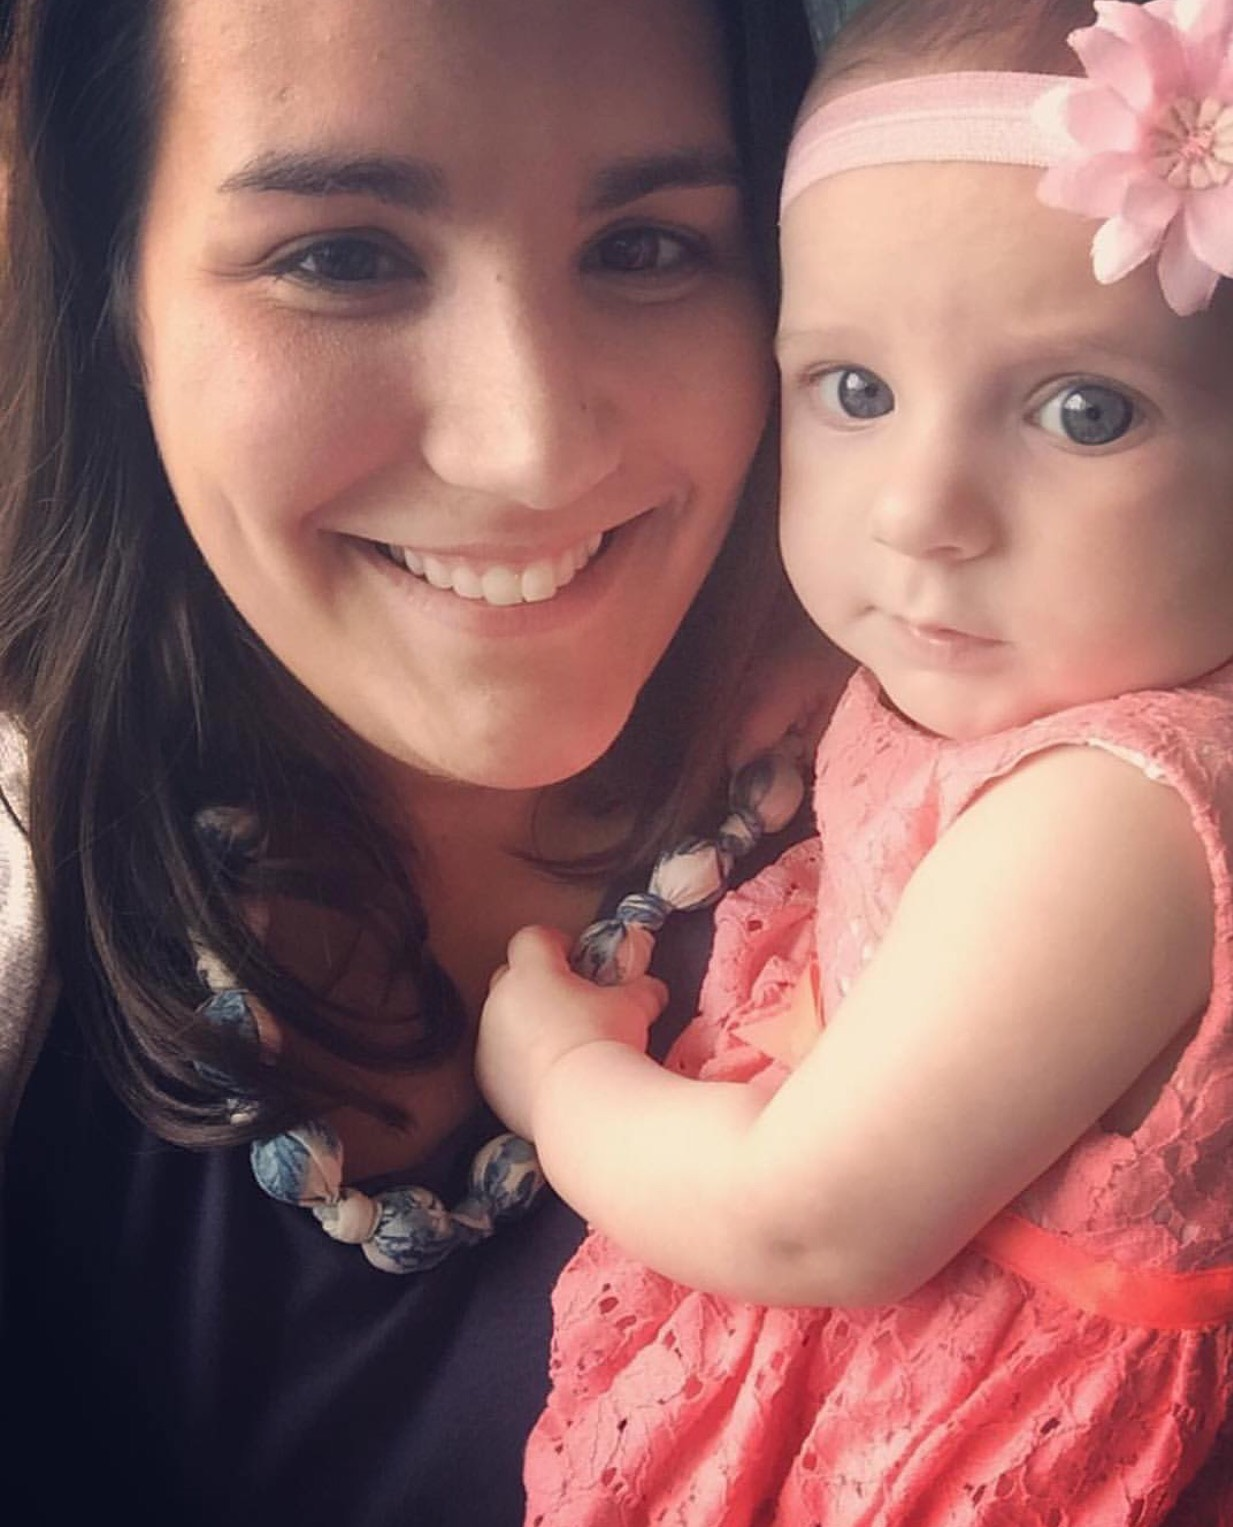 - Laura is a breastfeeding advocate and blogger. She has worked with an assortment of companies and has a passion for helping moms reach their breastfeeding goals. She lives with her husband and two girls in Charlotte, NC. You can find Laura here:InstagramBlog